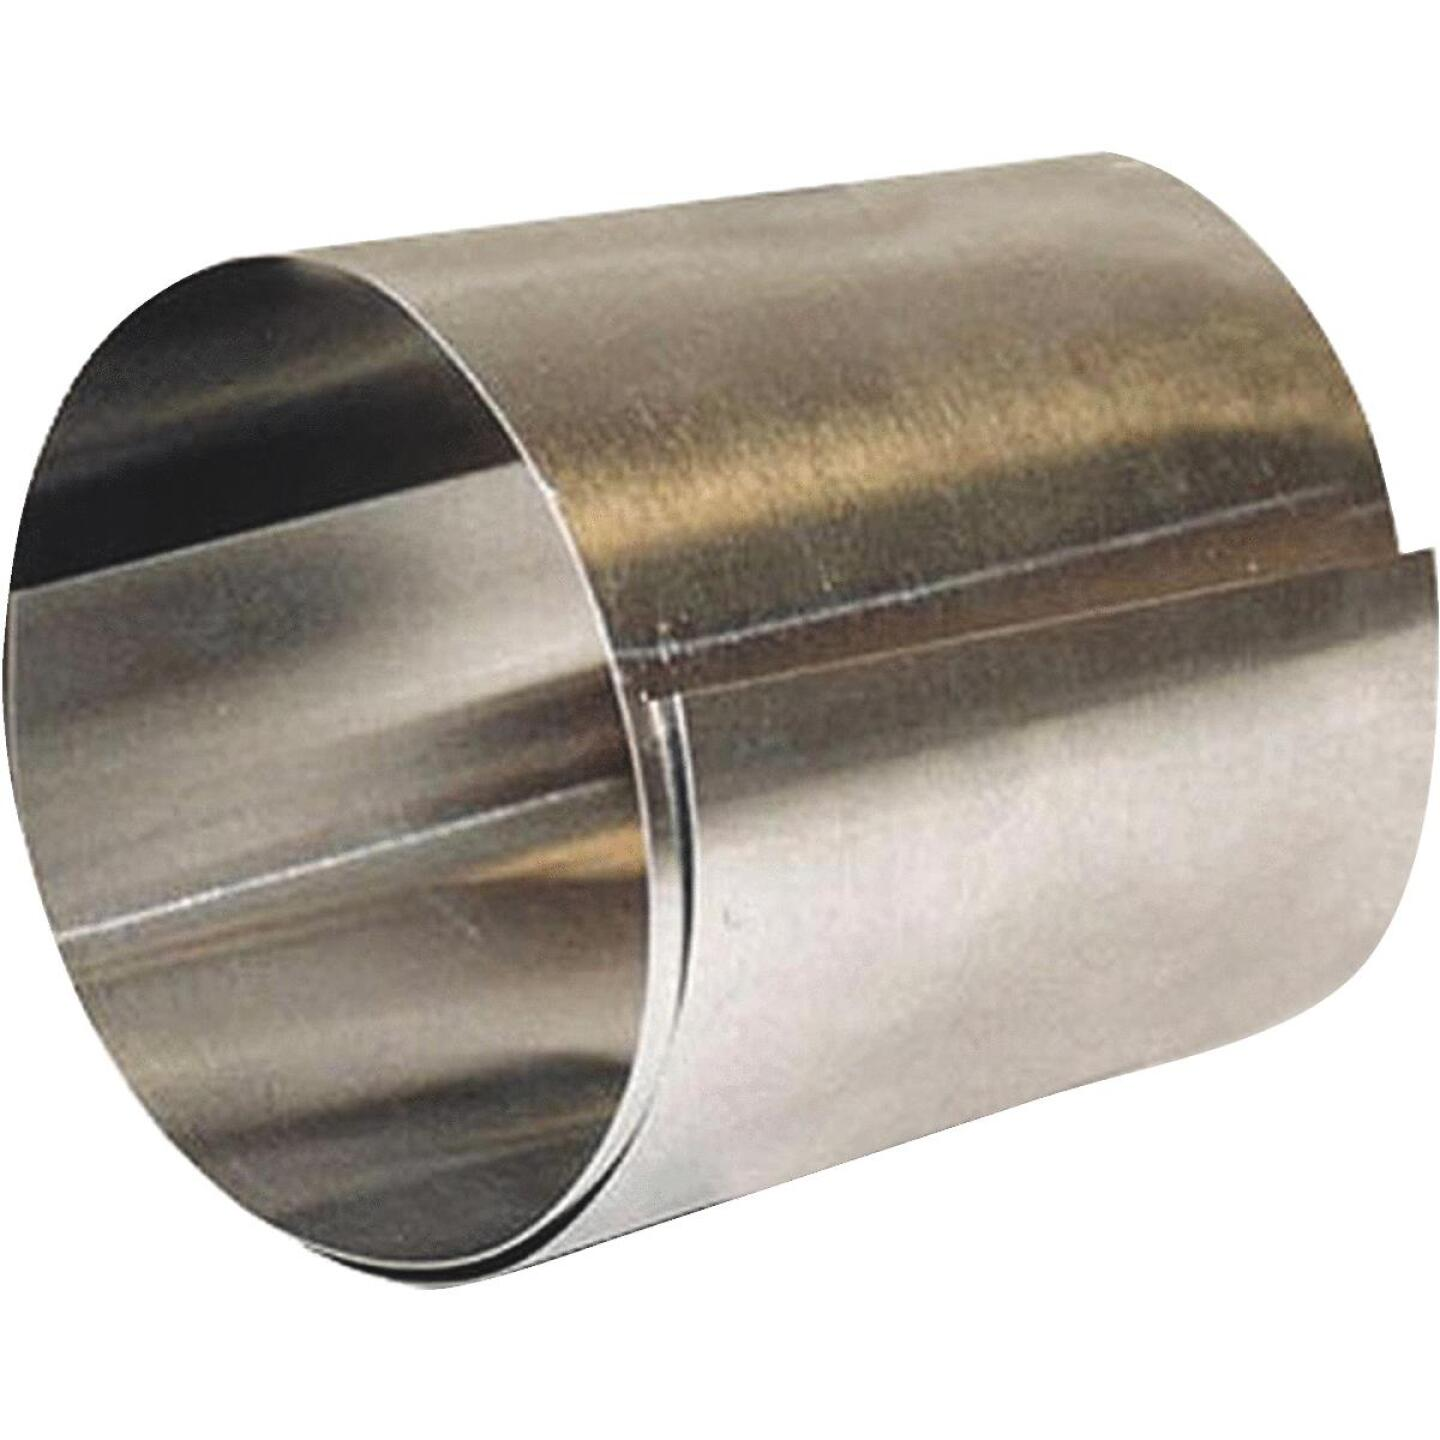 Dundas Jafine 4-1/2 In. Aluminum Universal Duct Connector Image 1